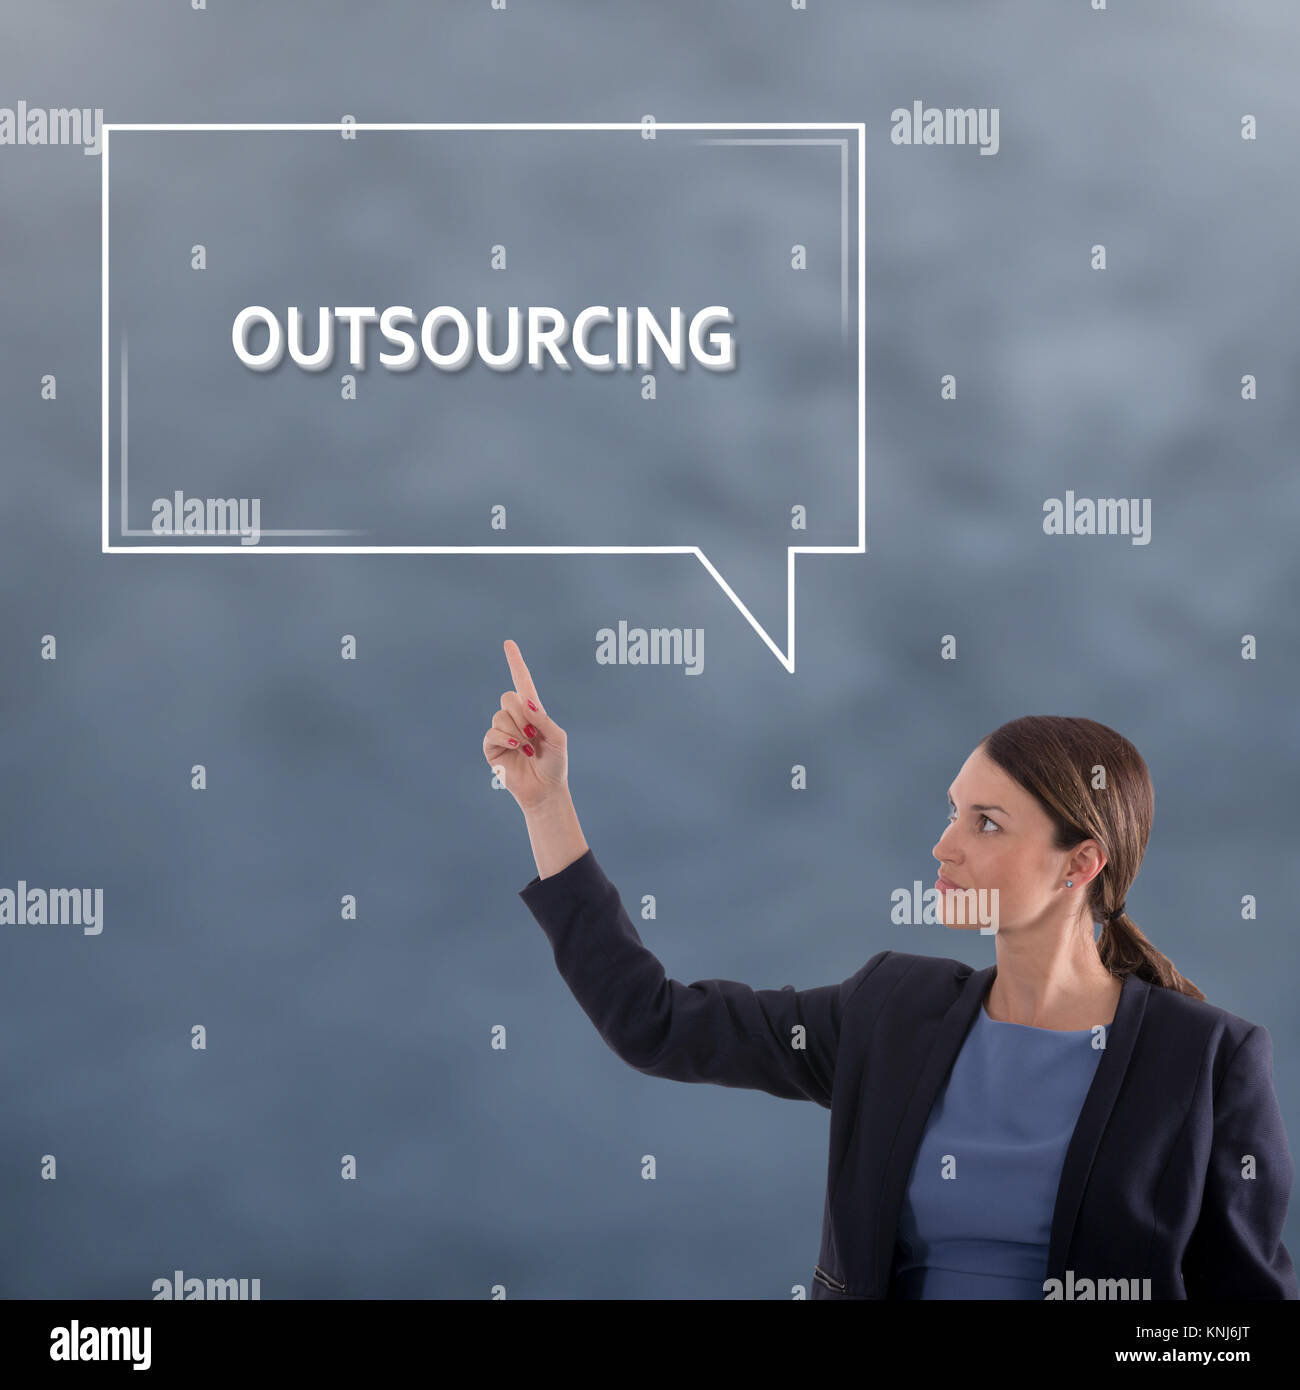 OUTSOURCING Business Concept. Business Woman Graphic Concept - Stock Image